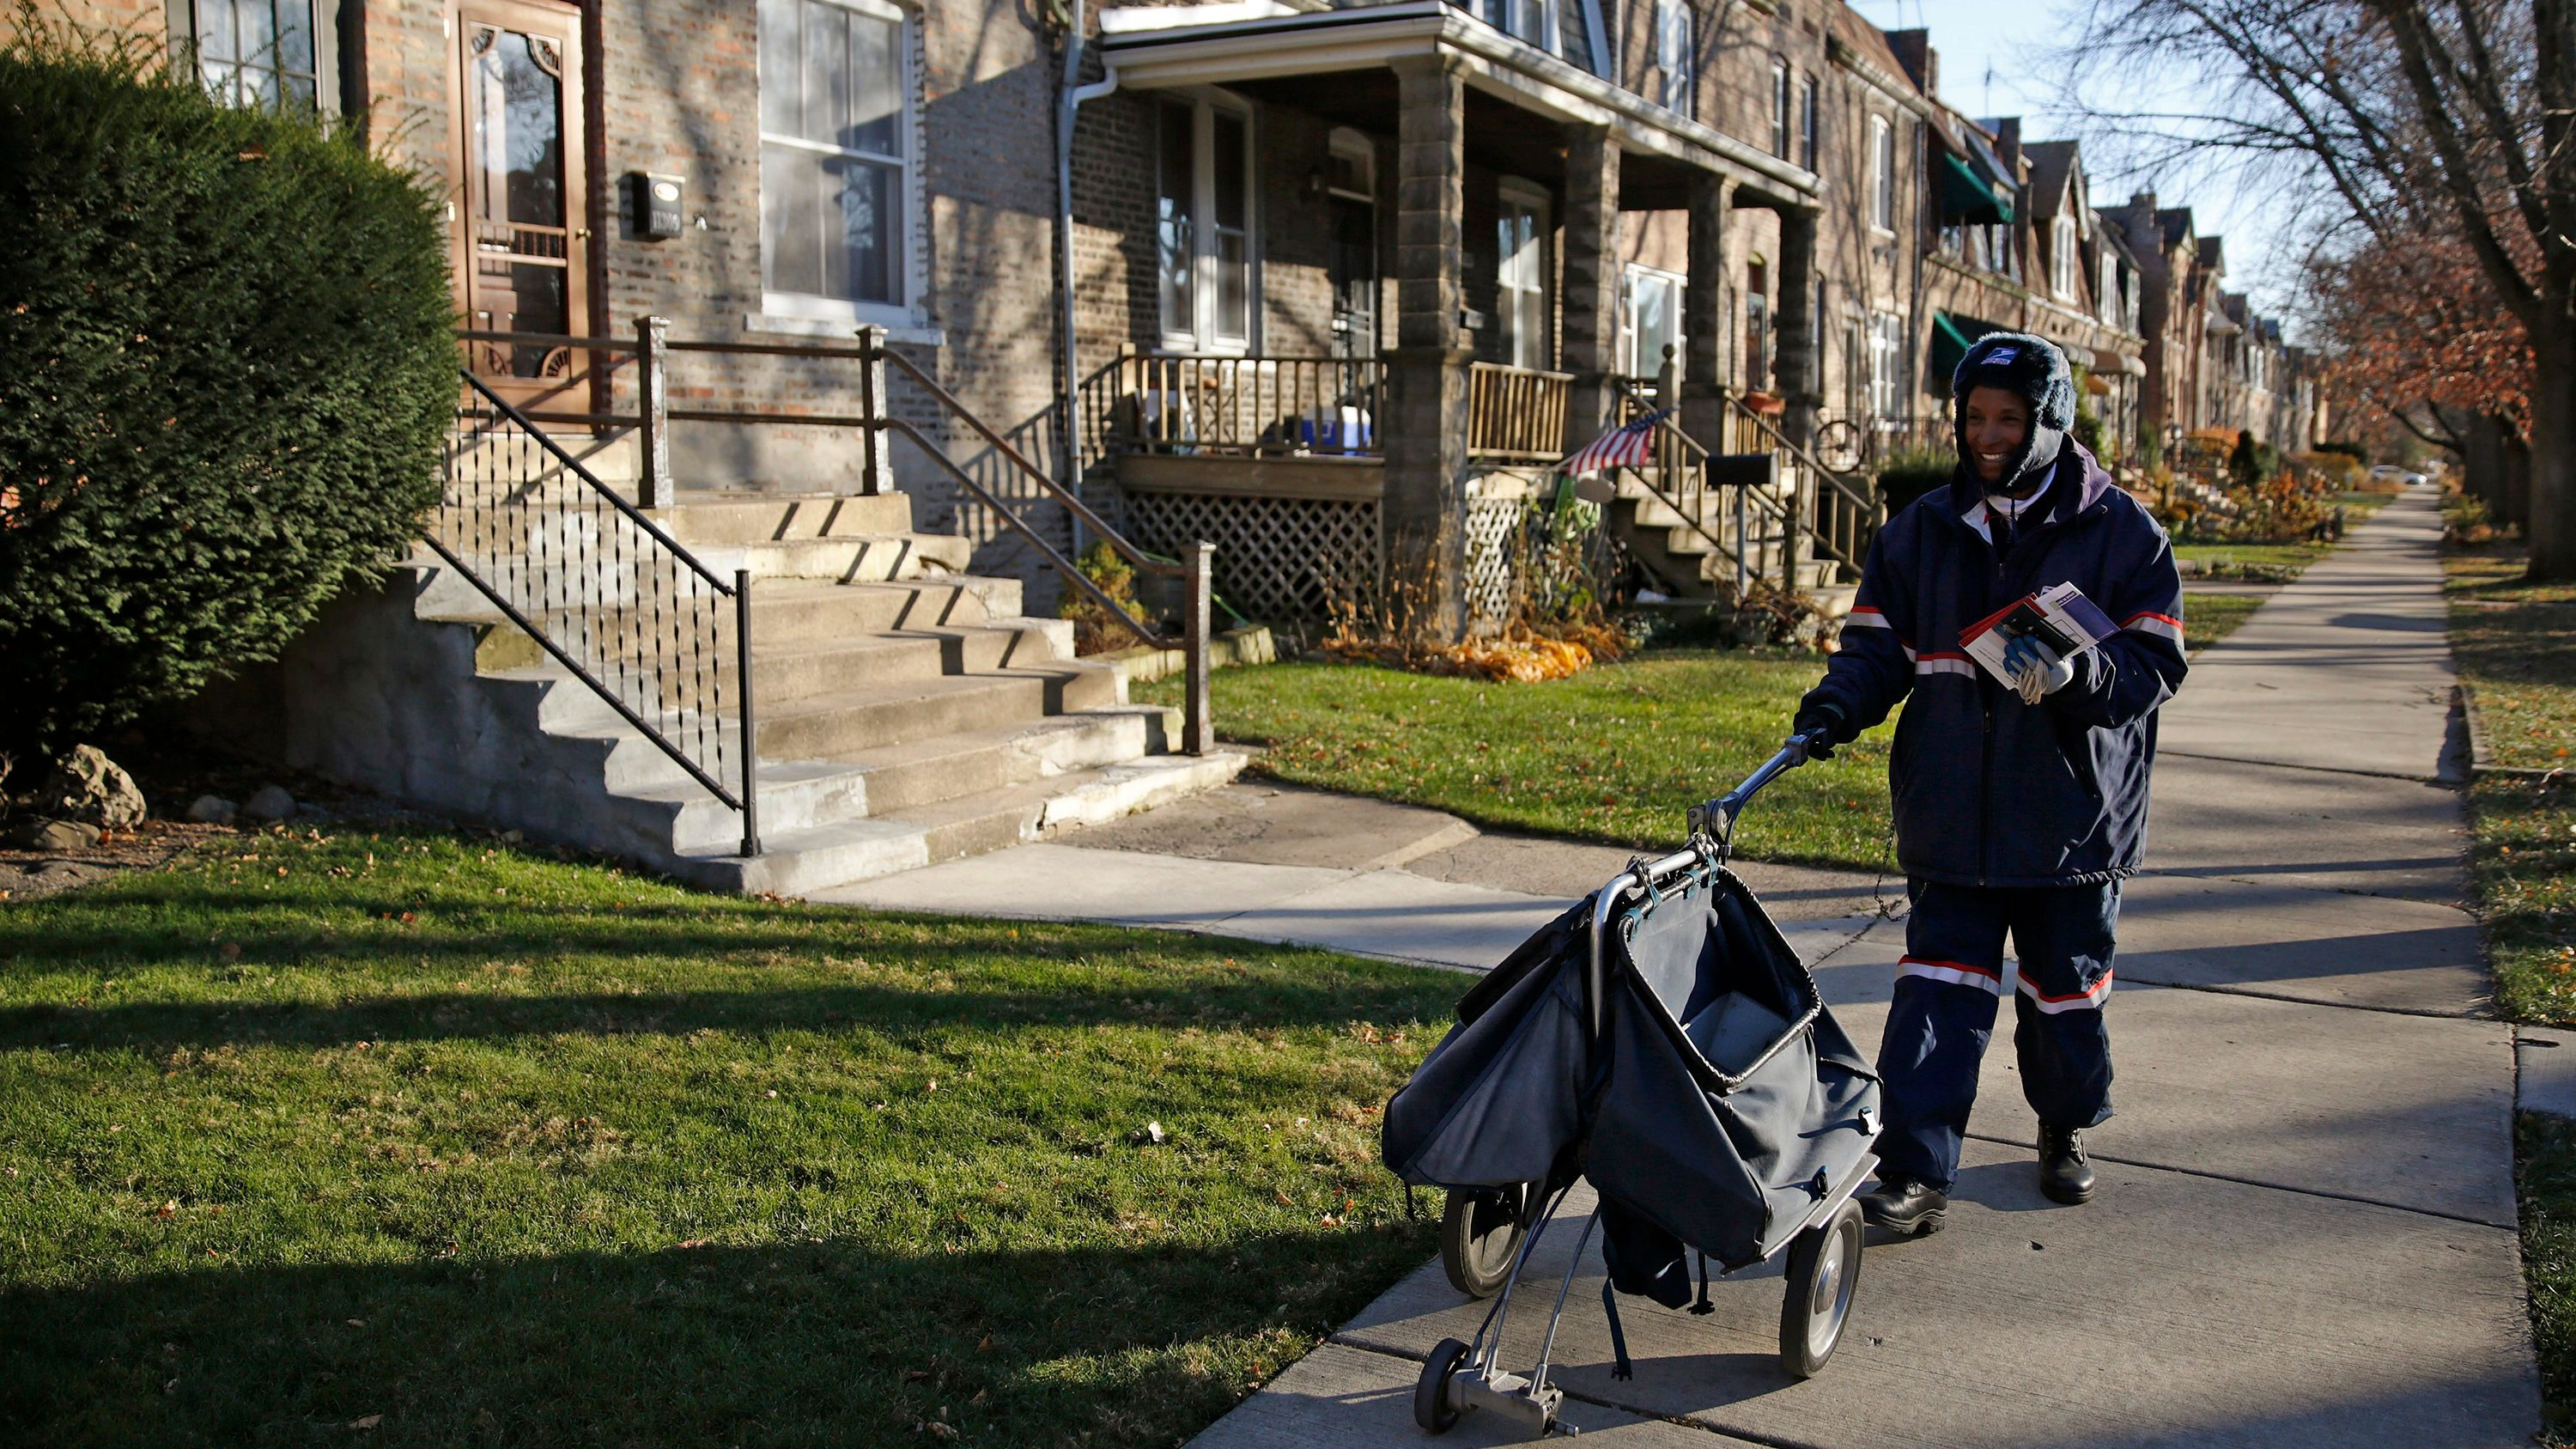 Mail carrier Marissa Ogletree delivers mail in the historic Pullman neighborhood in Chicago November 20, 2014. U.S. President Barack Obama is expected to announce the designation of the Pullman neighborhood as a national park on February 19, according to park advocates. The neighborhood's brick homes and ornate public buildings were built in the 1800s by industrialist George Pullman as a blue-collar utopia to house workers from his sleeper car factory. Picture taken November 20, 2014.    REUTERS/Andrew Nelles (UNITED STATES - Tags: SOCIETY POLITICS ENVIRONMENT) - TM3EABN1EM301